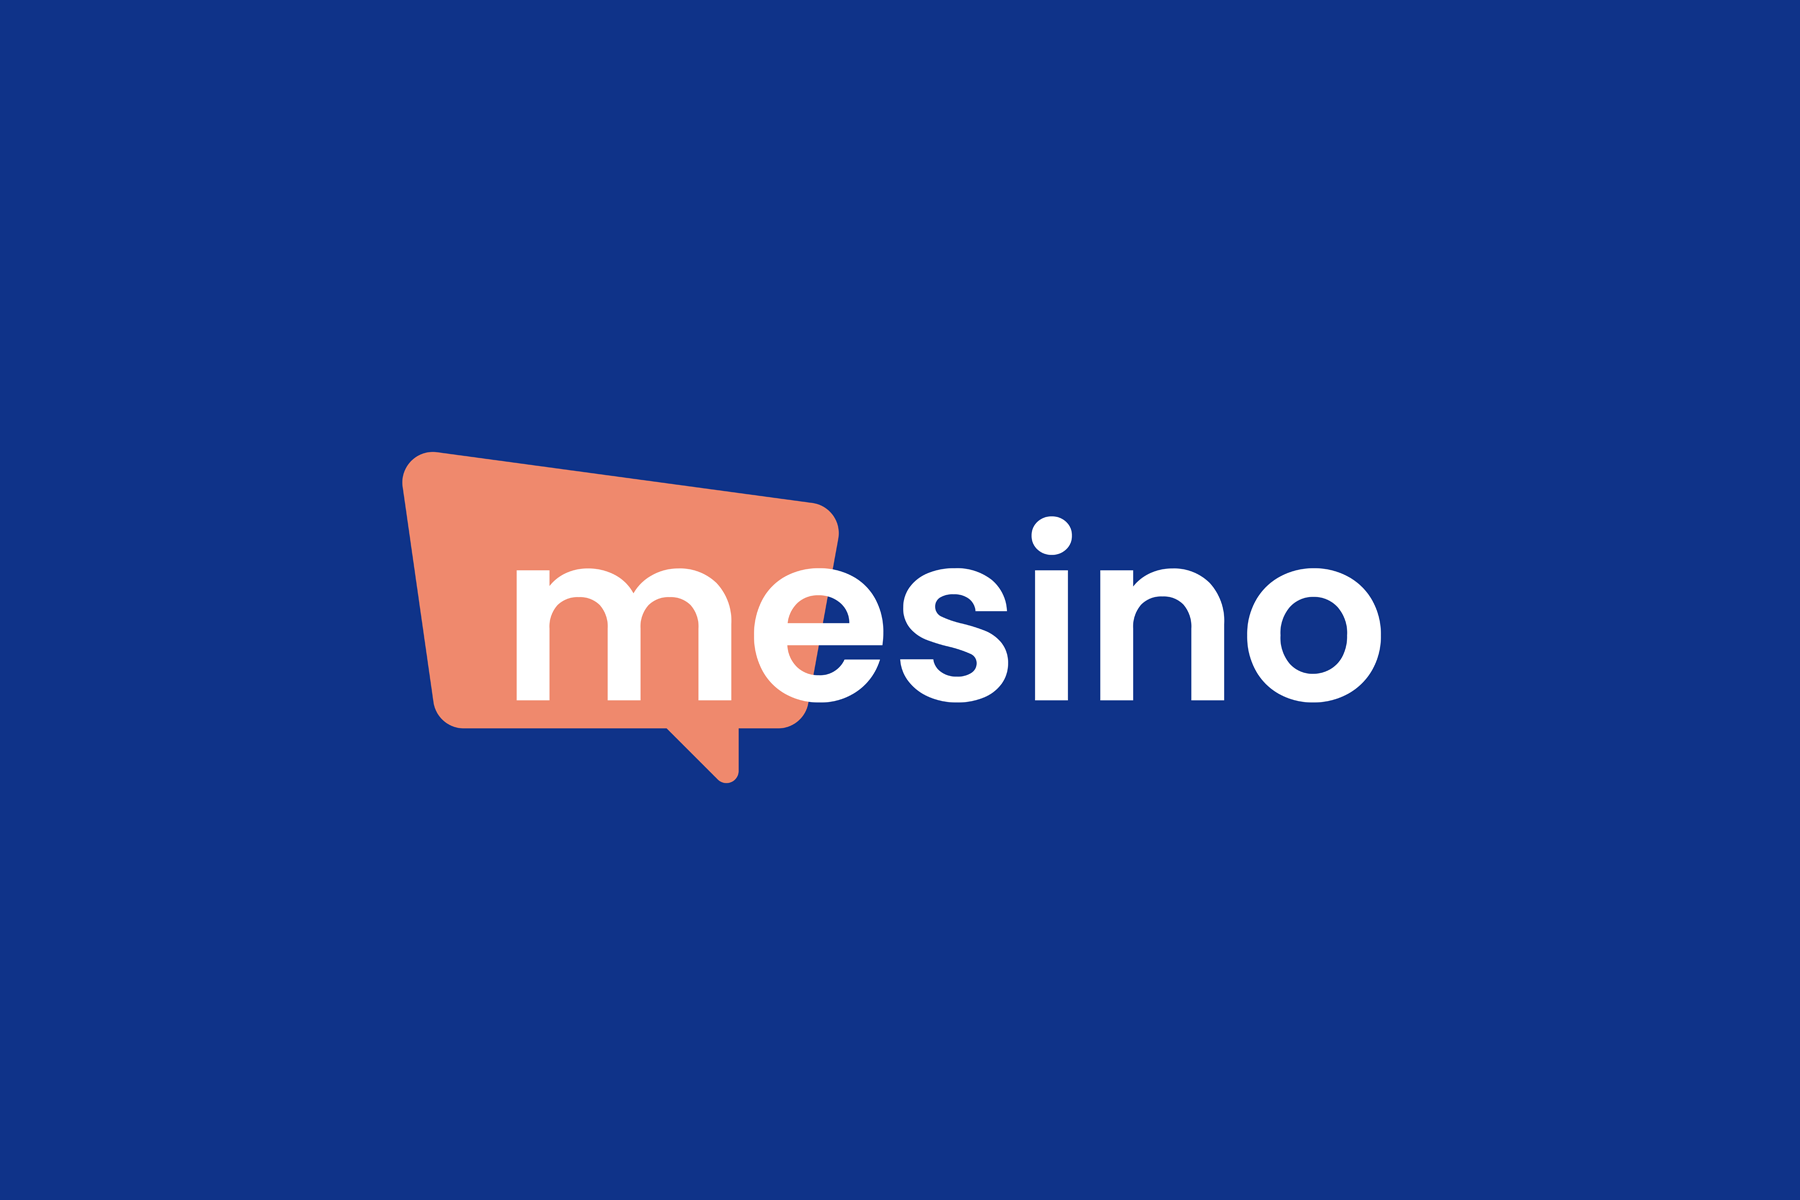 Mesino: Message? Delivered